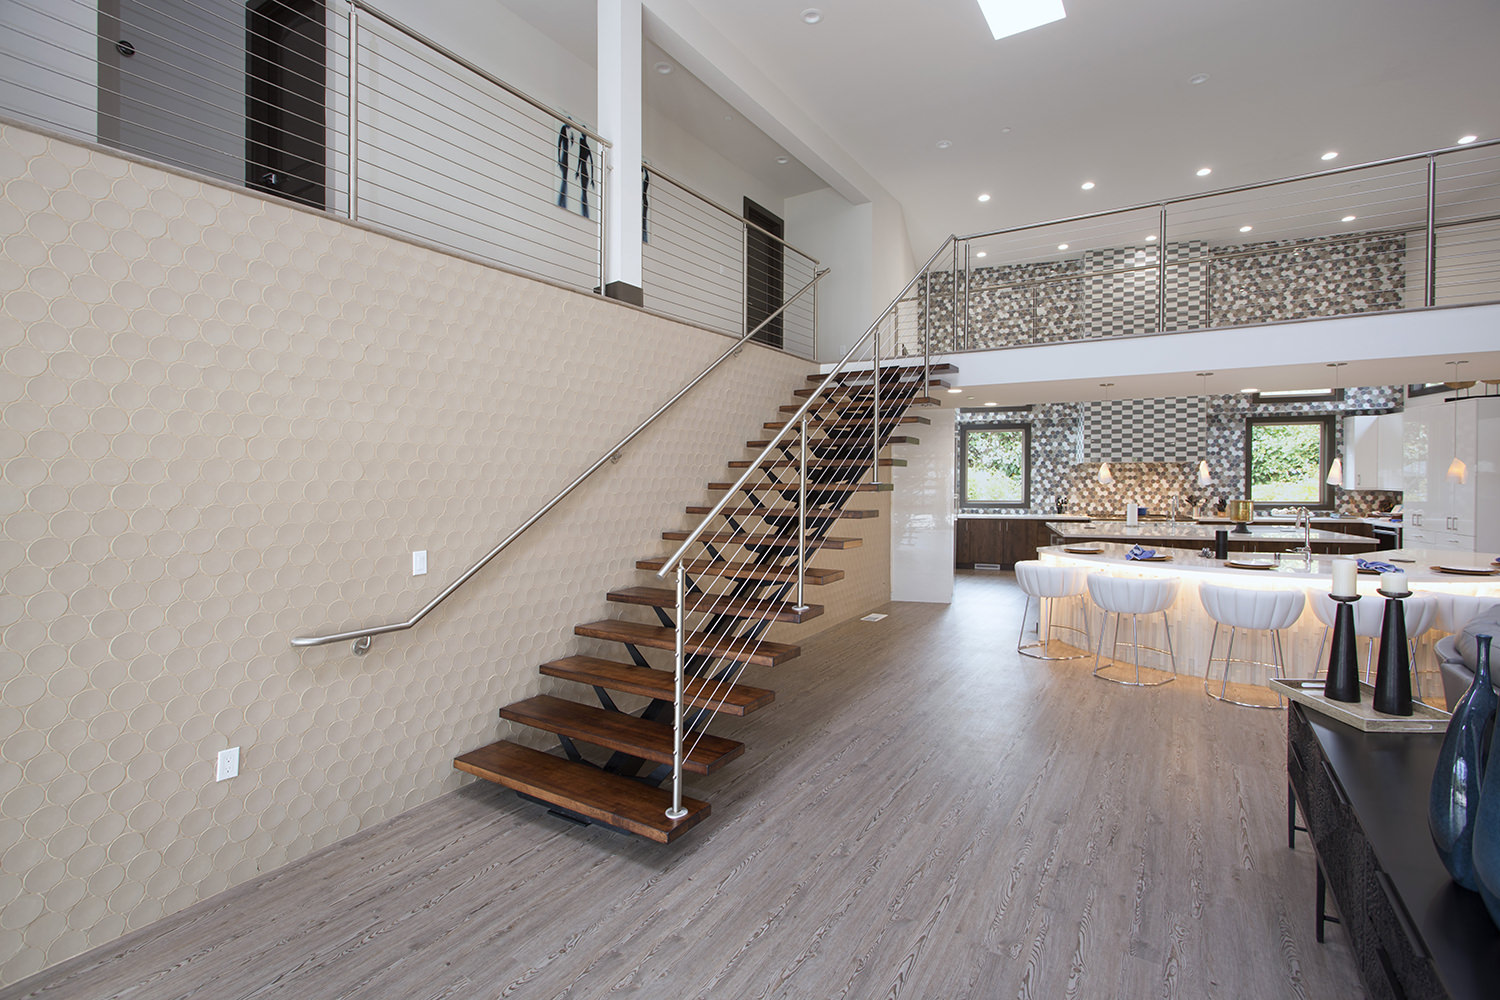 stairs-interior-design-los-altos-california-ktj-design-co-1.jpg